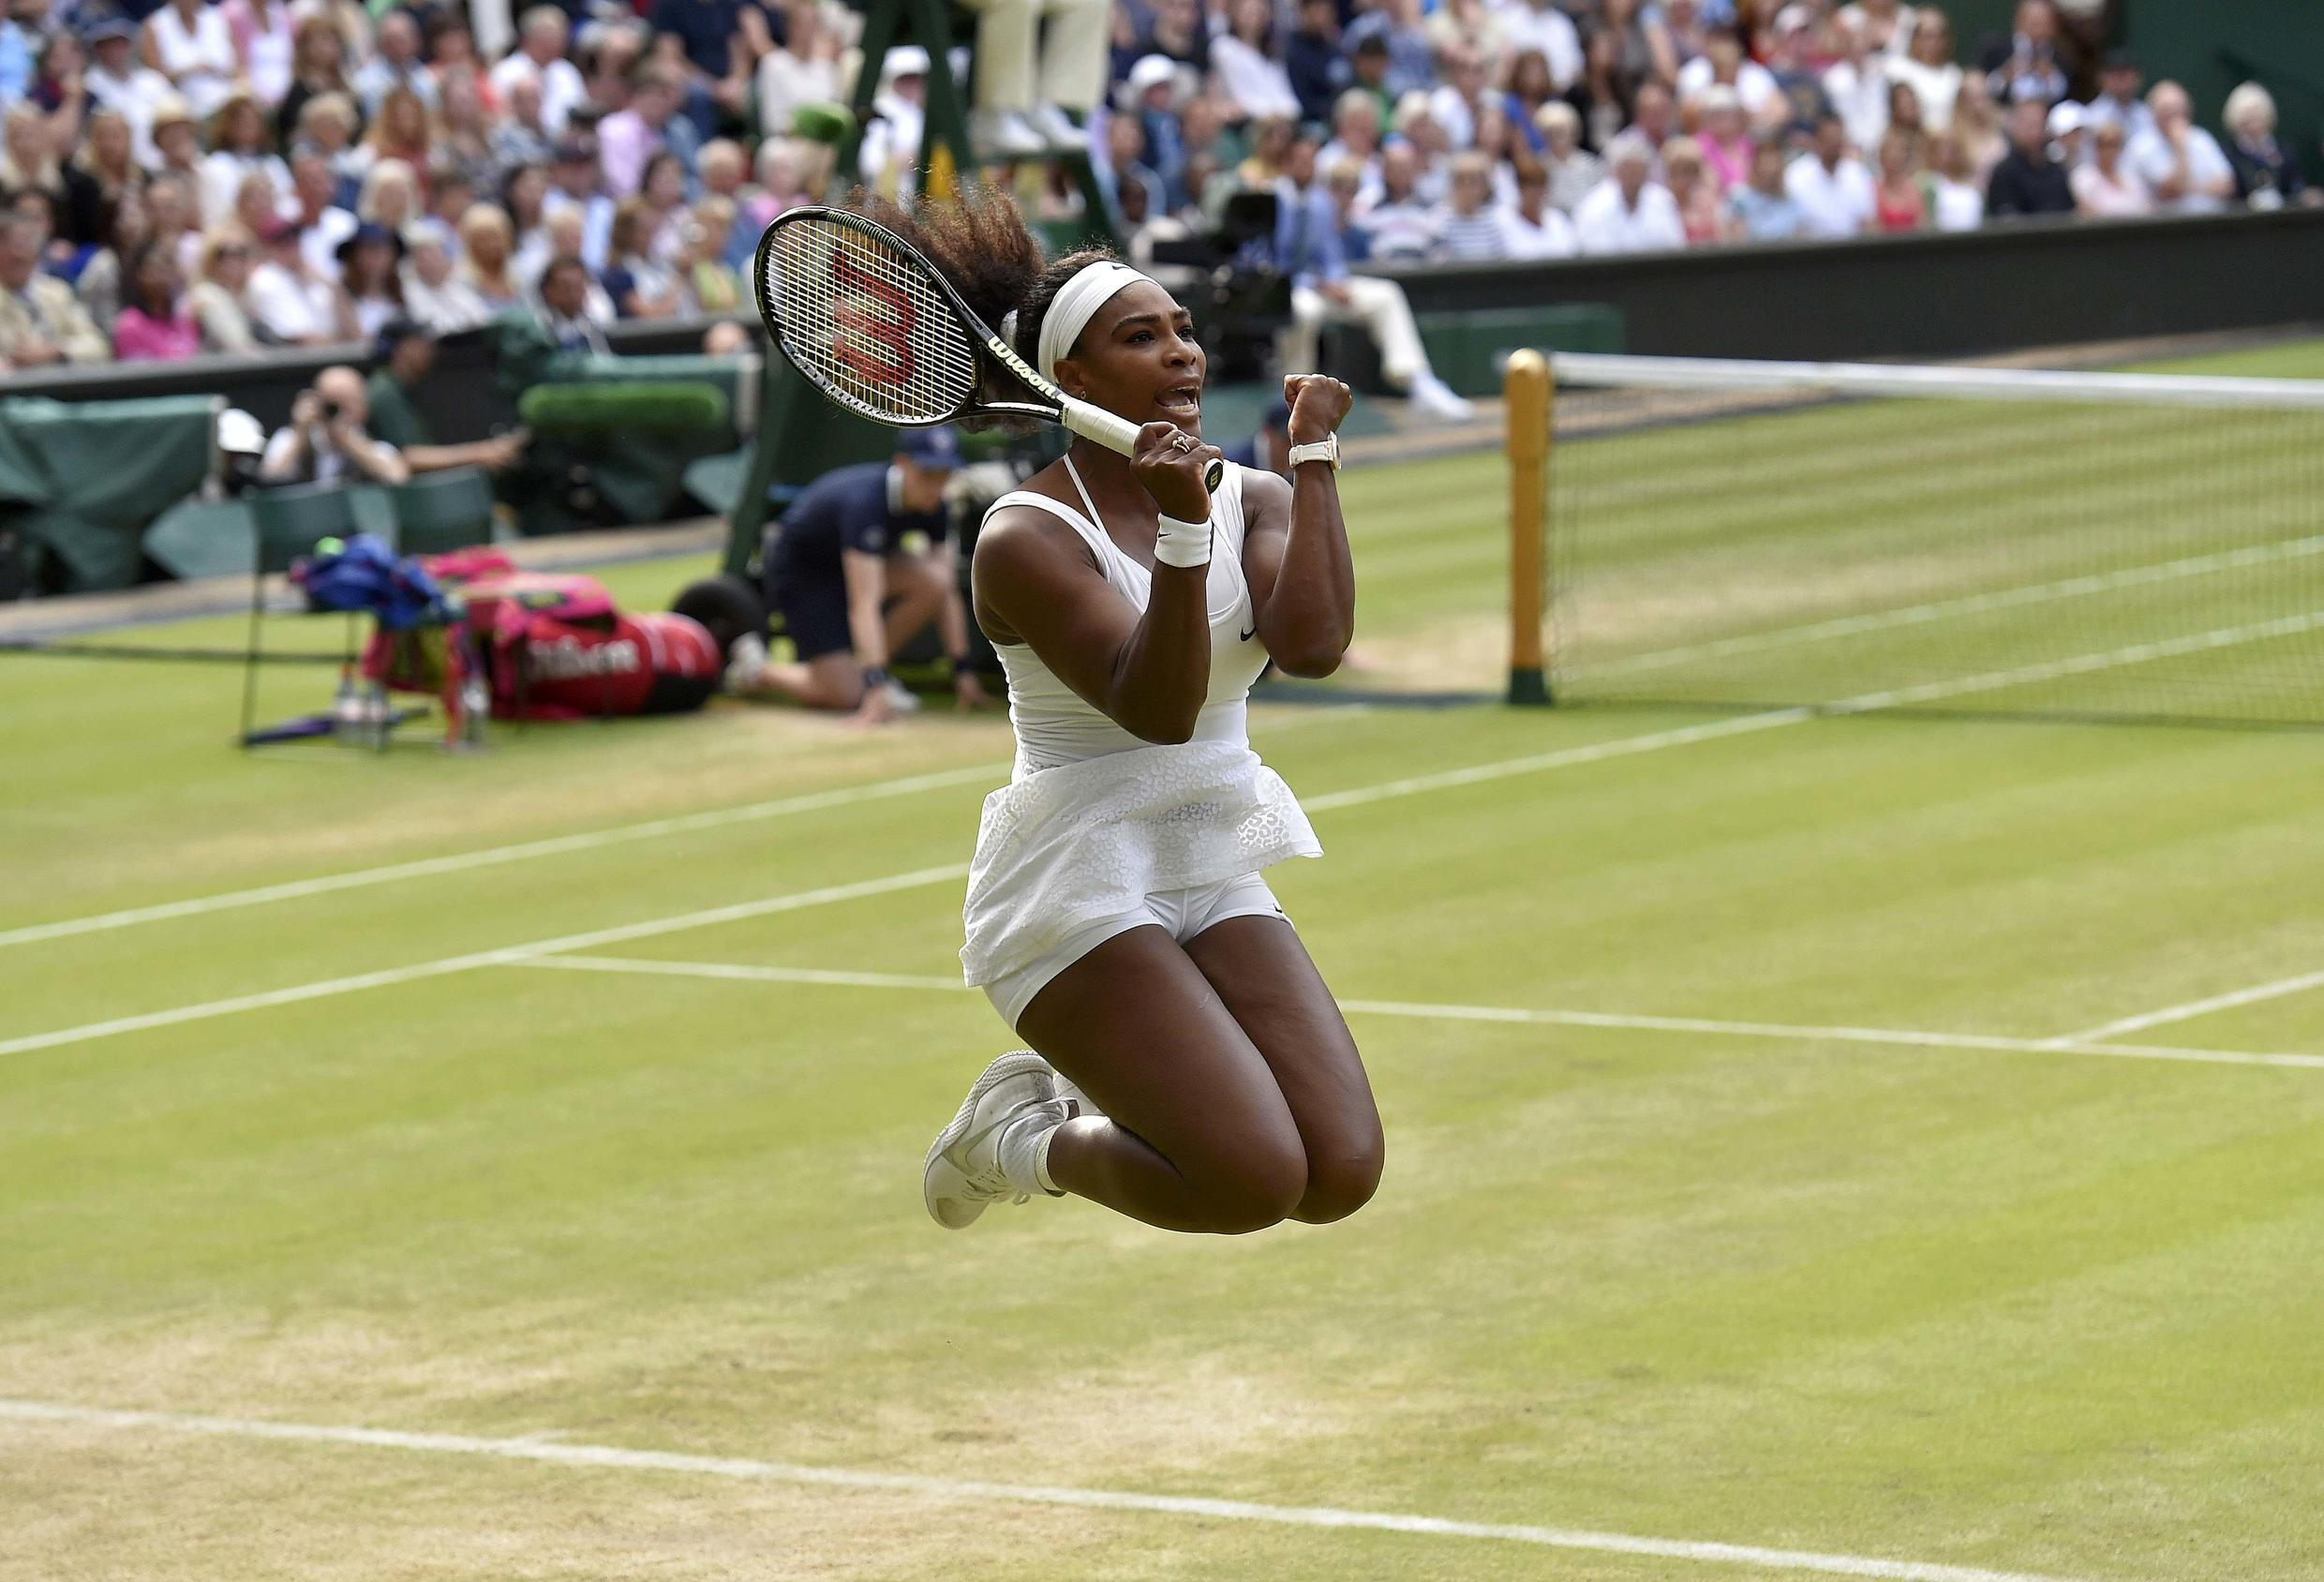 Serena Williams of the U.S.A. celebrates after winning her match against Victoria Azarenka of Belarus at the Wimbledon Tennis Championships in London, July 7, 2015.